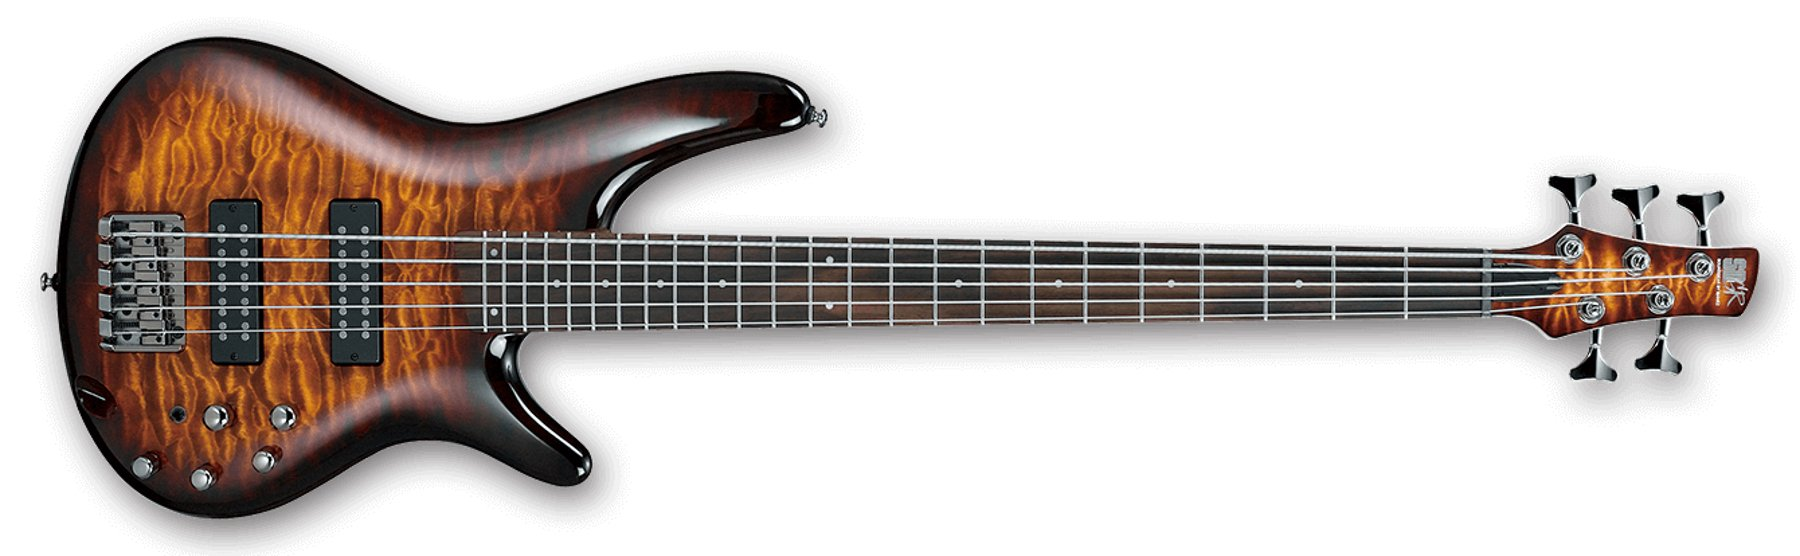 5-String Bass Guitar, 24-Fret, Rosewood Fretboard with White Dot ...